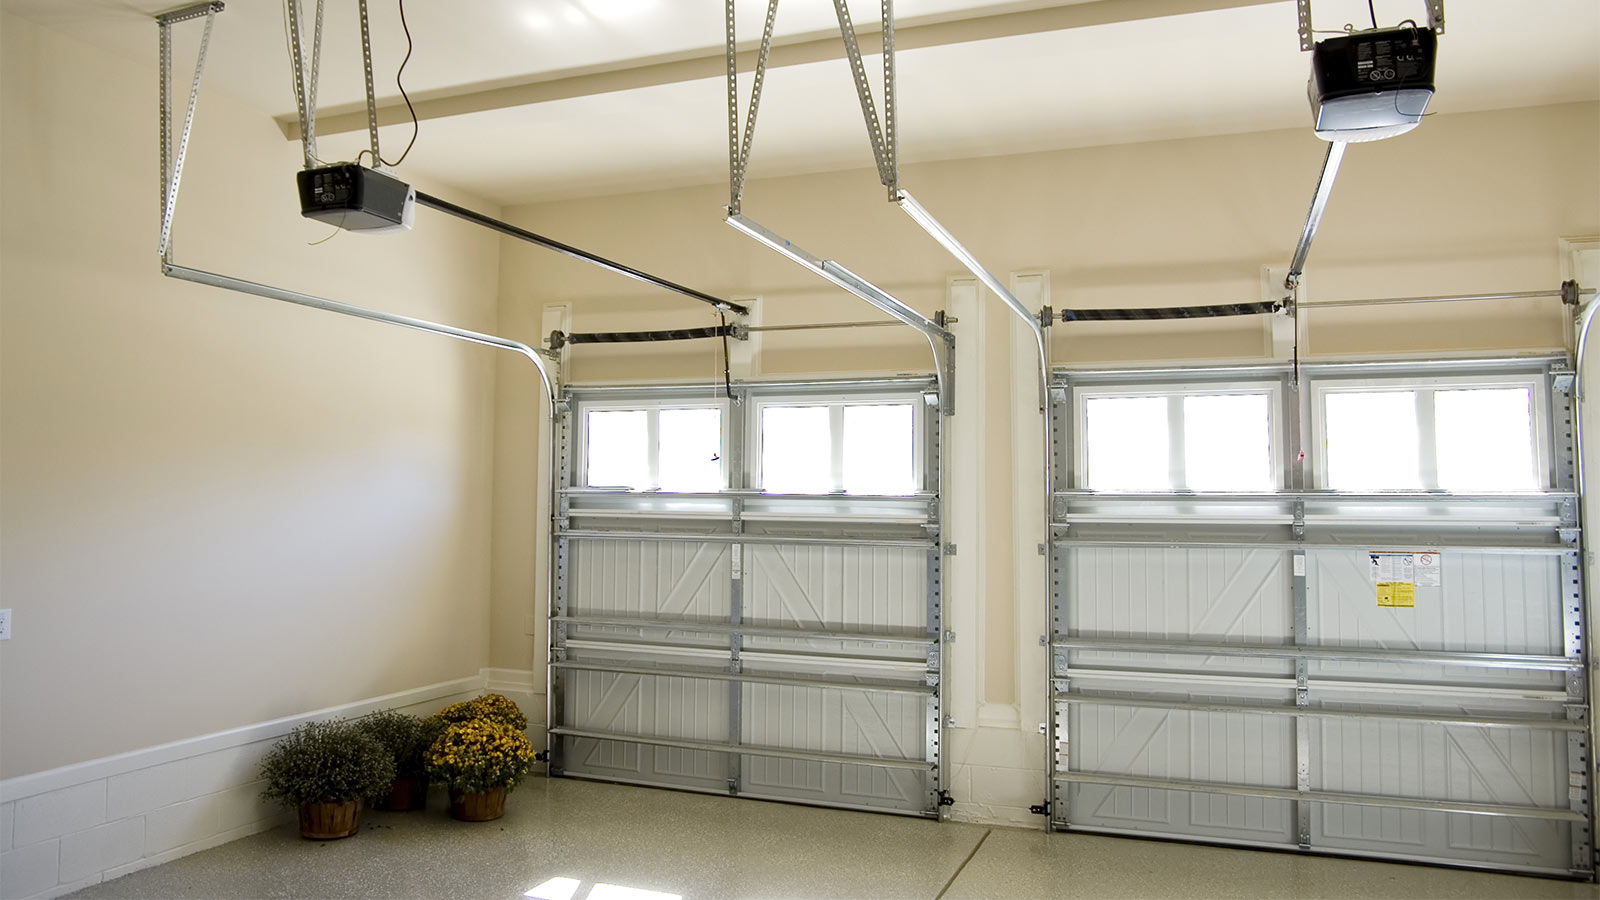 Sectional Garage Doors from Steel Security Doors Suffolk suppliers.